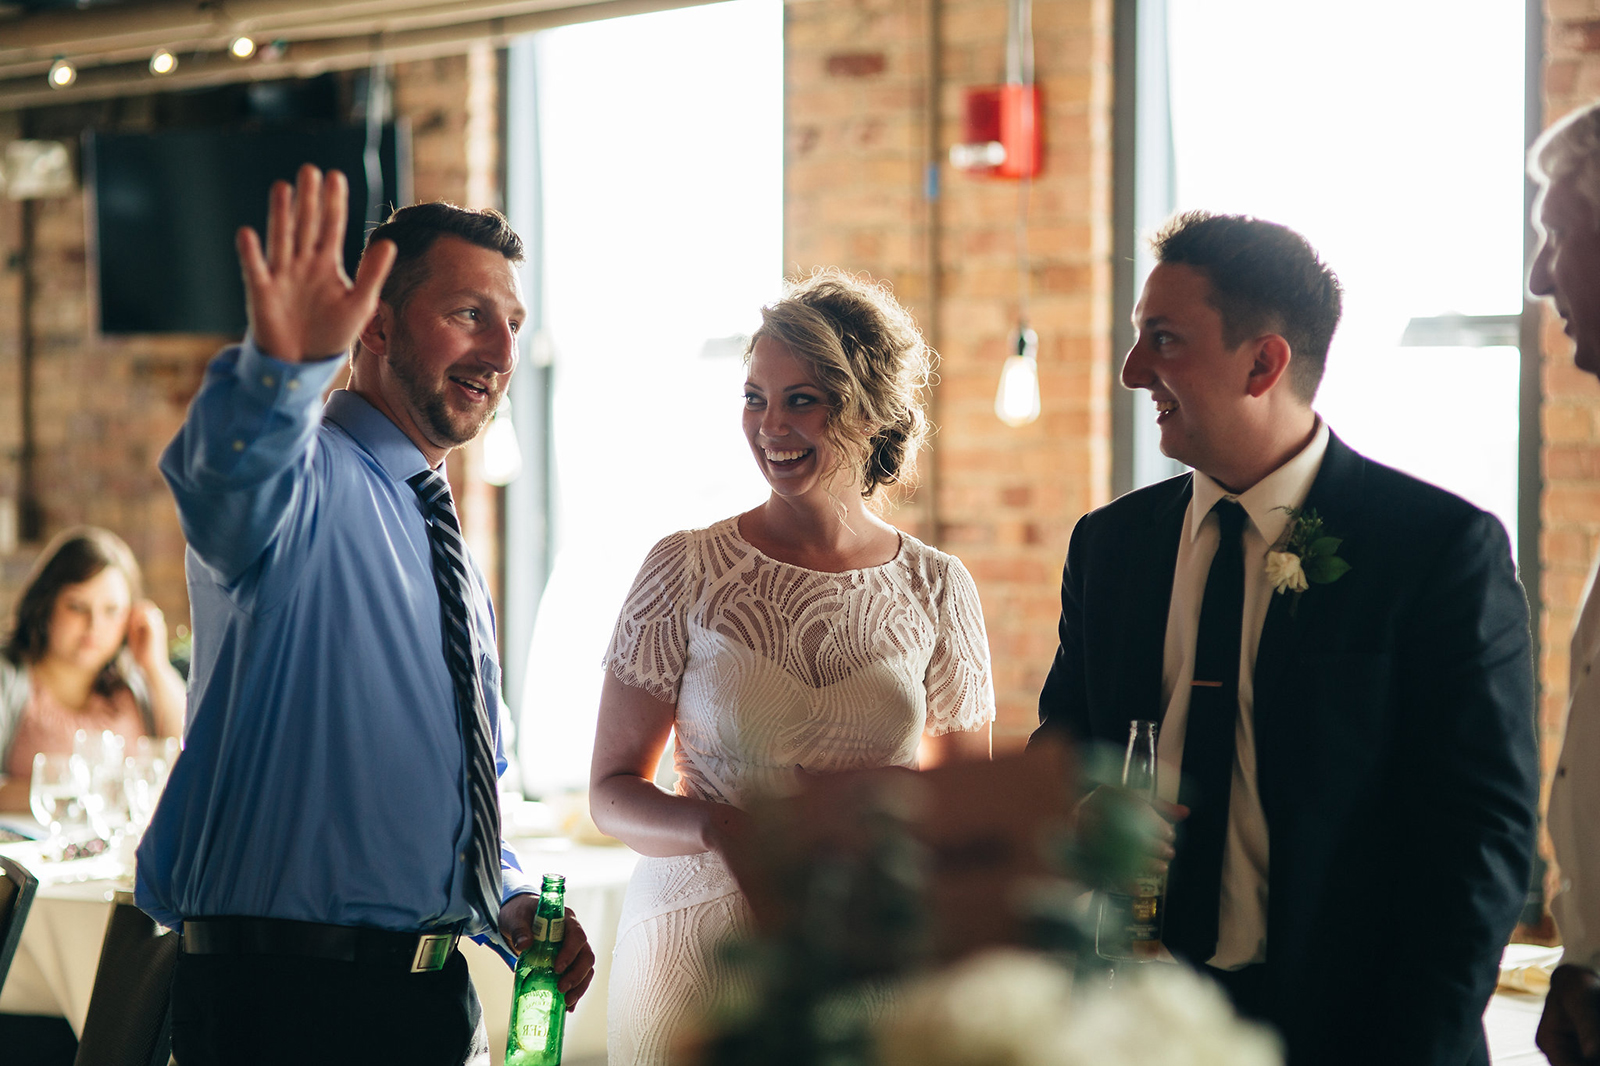 Bride and groom talk to guest at their wedding.